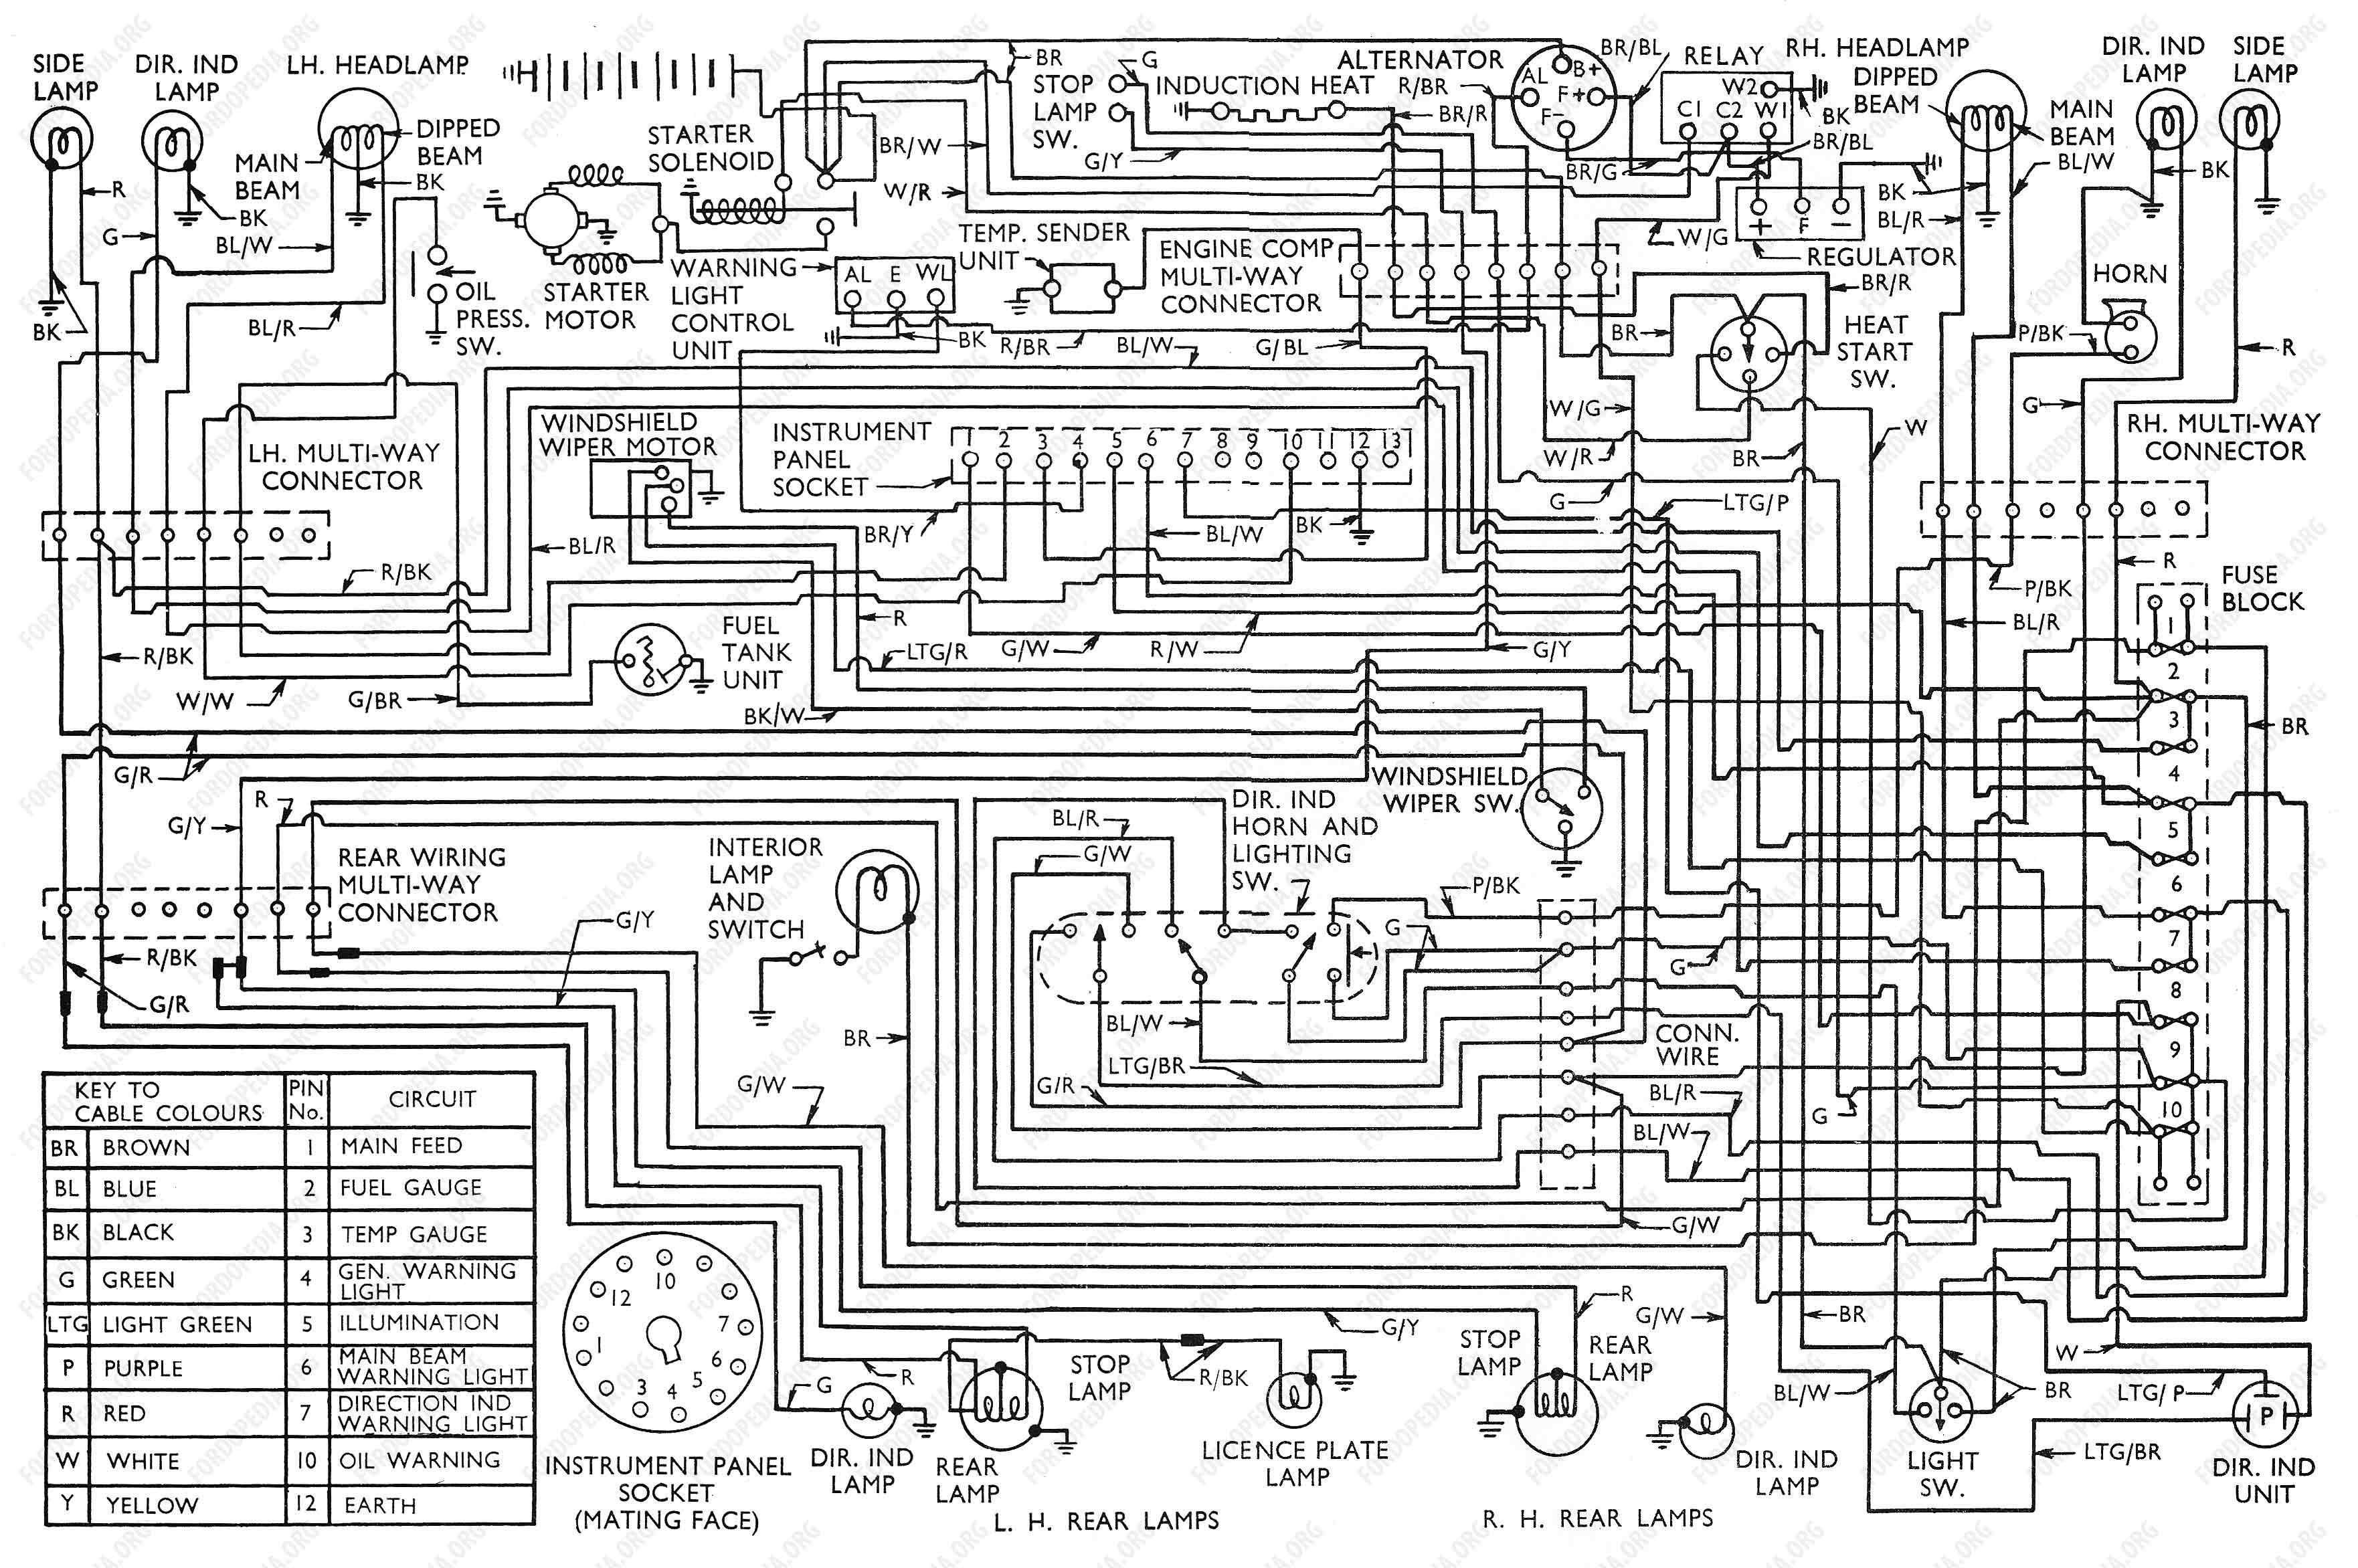 small resolution of ford van diagram wiring diagram loadford transit diagram wiring diagram used ford van parts diagram ford